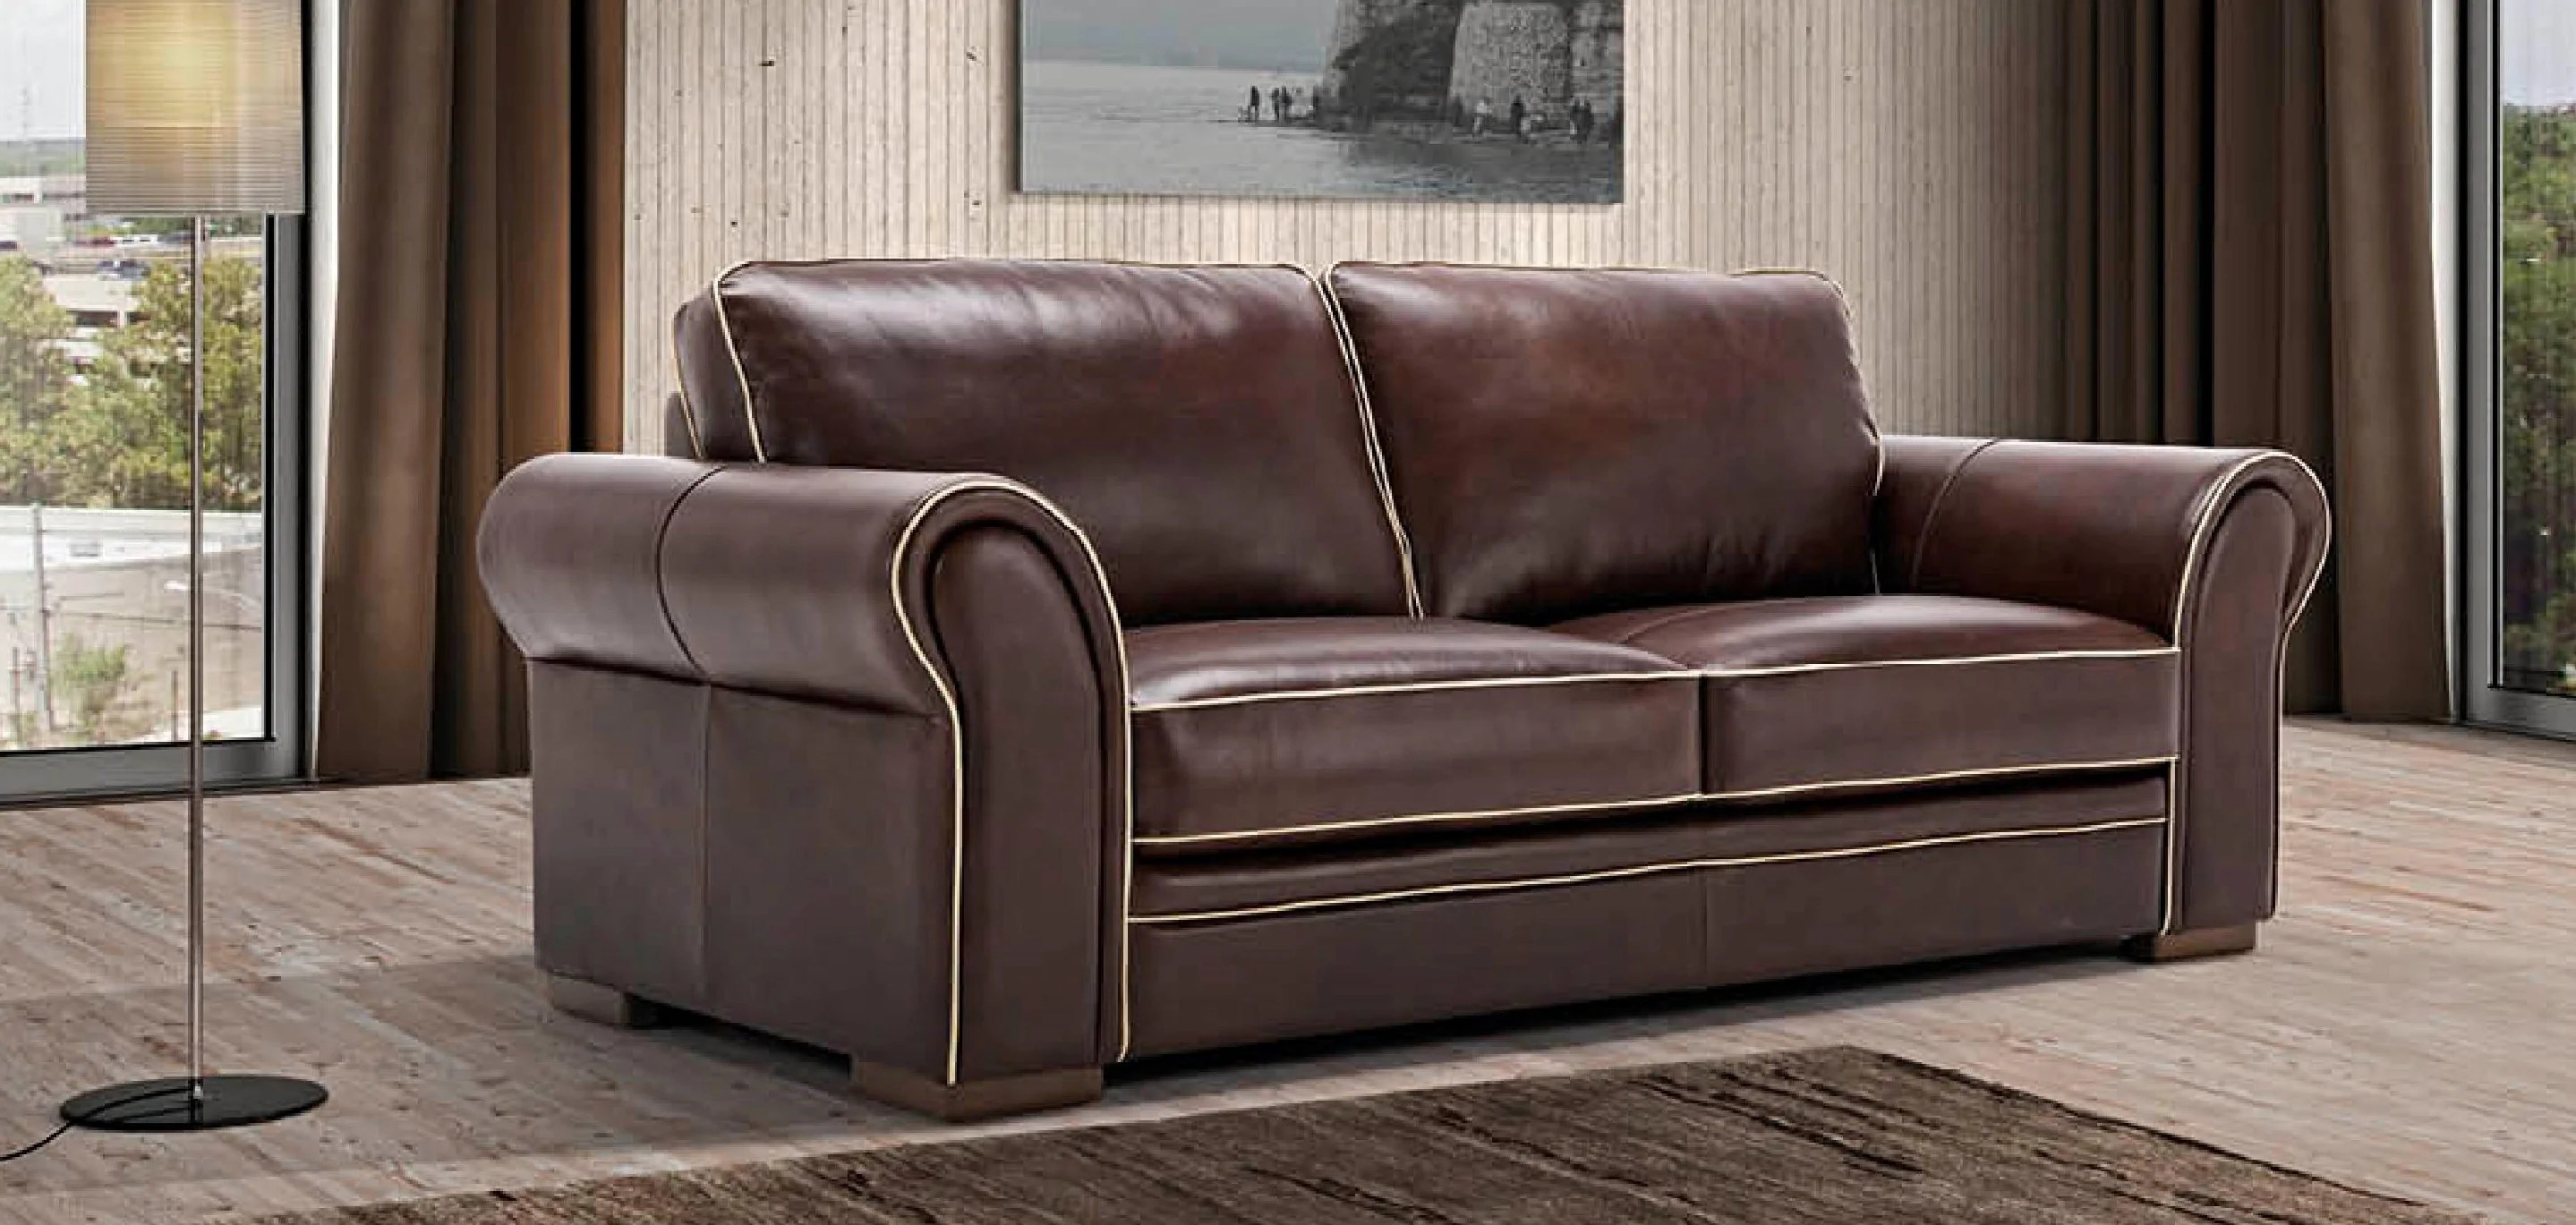 leather sofa manufacturers italy chairs and sofas in nigeria luxury furniture wakefield – kc